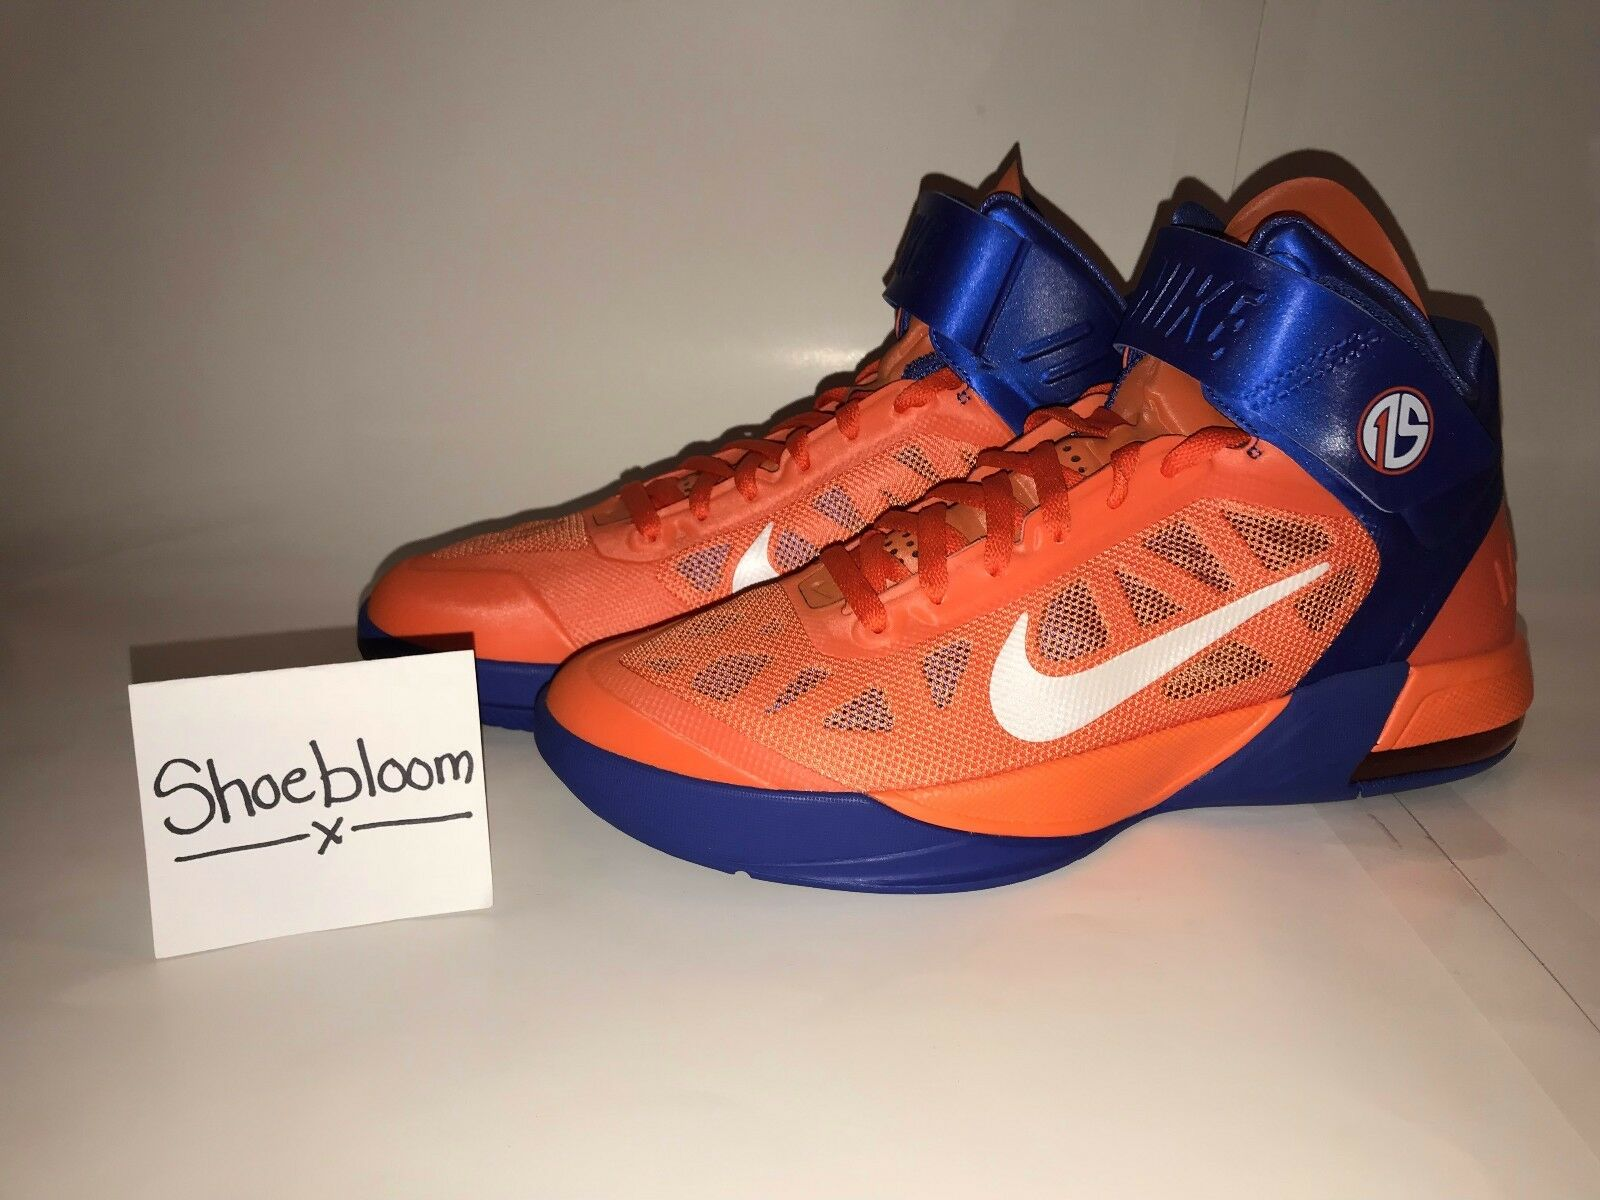 Nike Air Max Fly By Amare STAT NY Knicks PE Size 10.5 100% Authentic BNIB